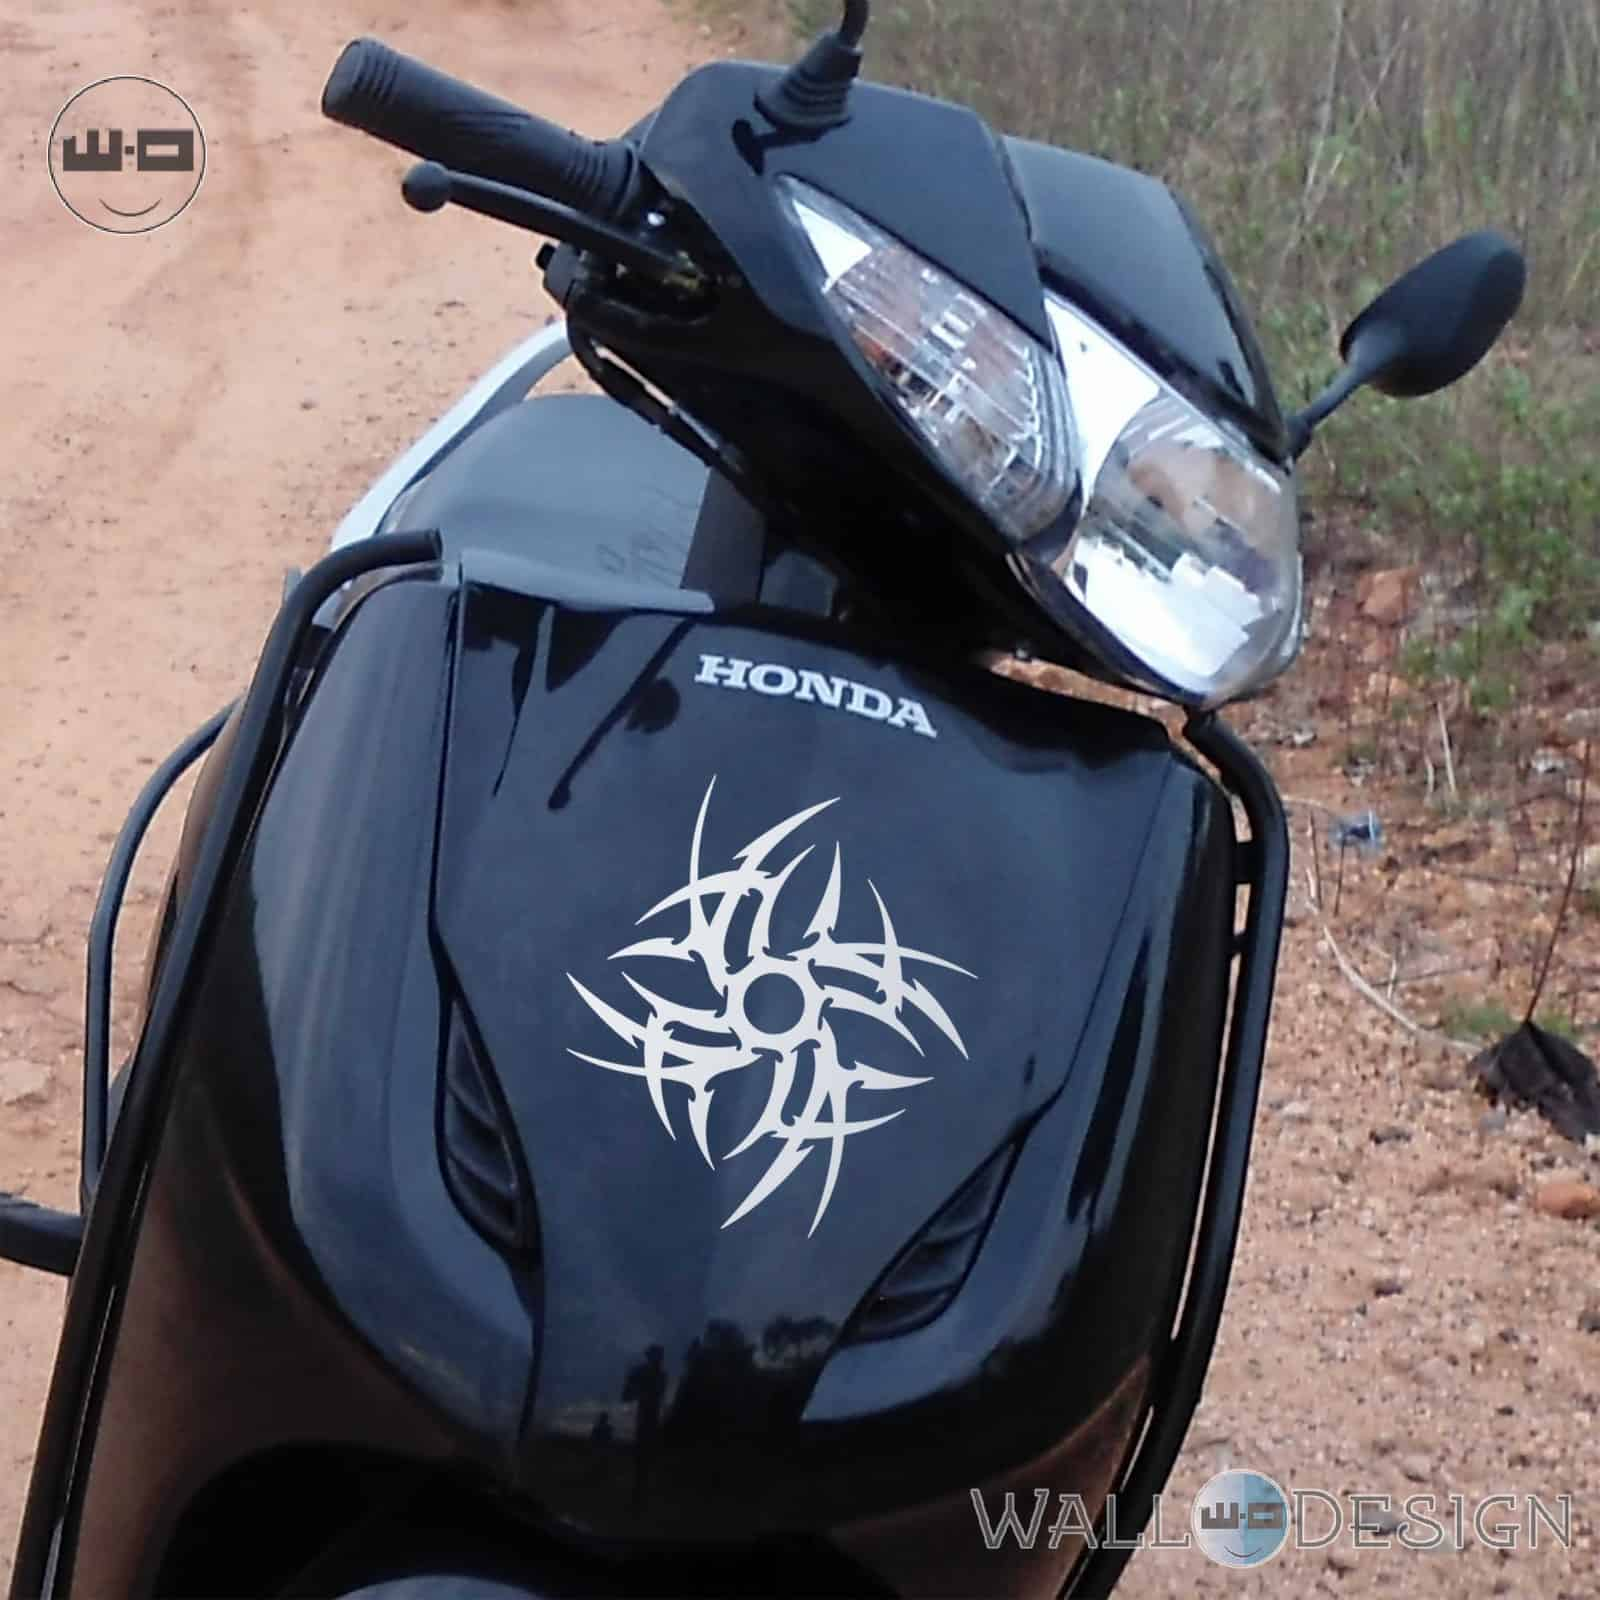 Wdc02100c walldesign stickers graphics for bikes tribal chakra silver jpg